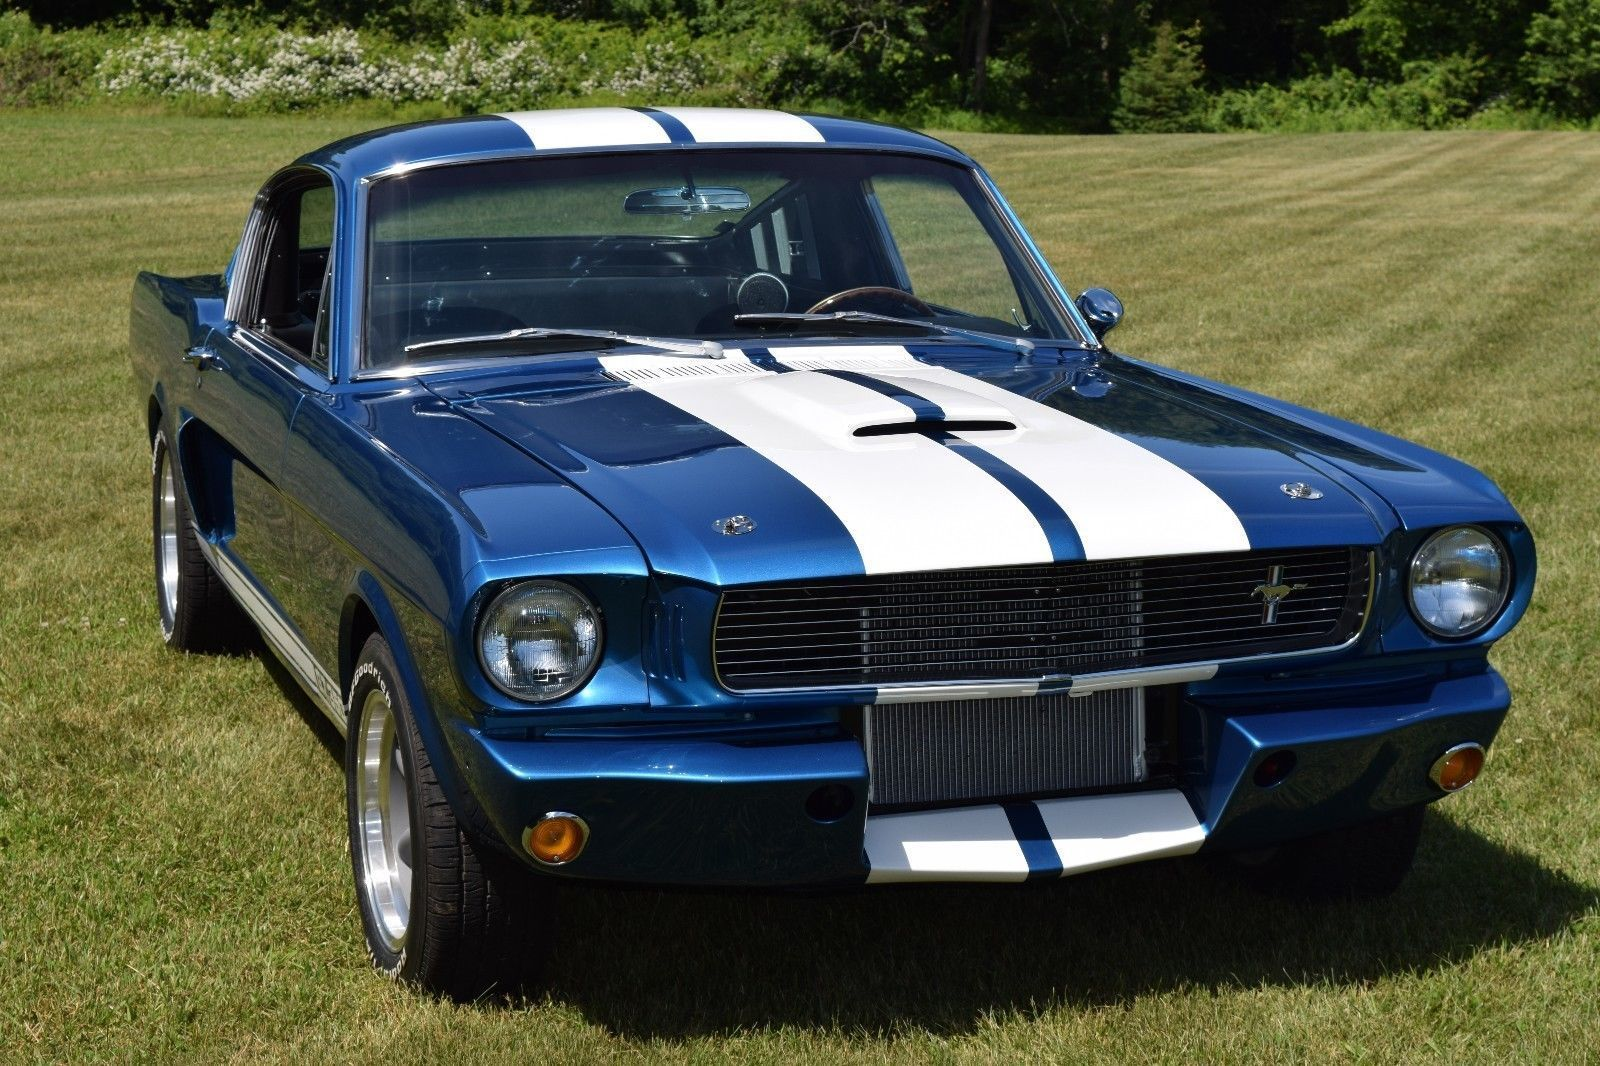 Ebay 1966 Ford Mustang 1966 Ford Mustang Fastback Gt350 Fordmustang Ford 1966 Ford Mustang Ford Mustang Classic Cars Muscle